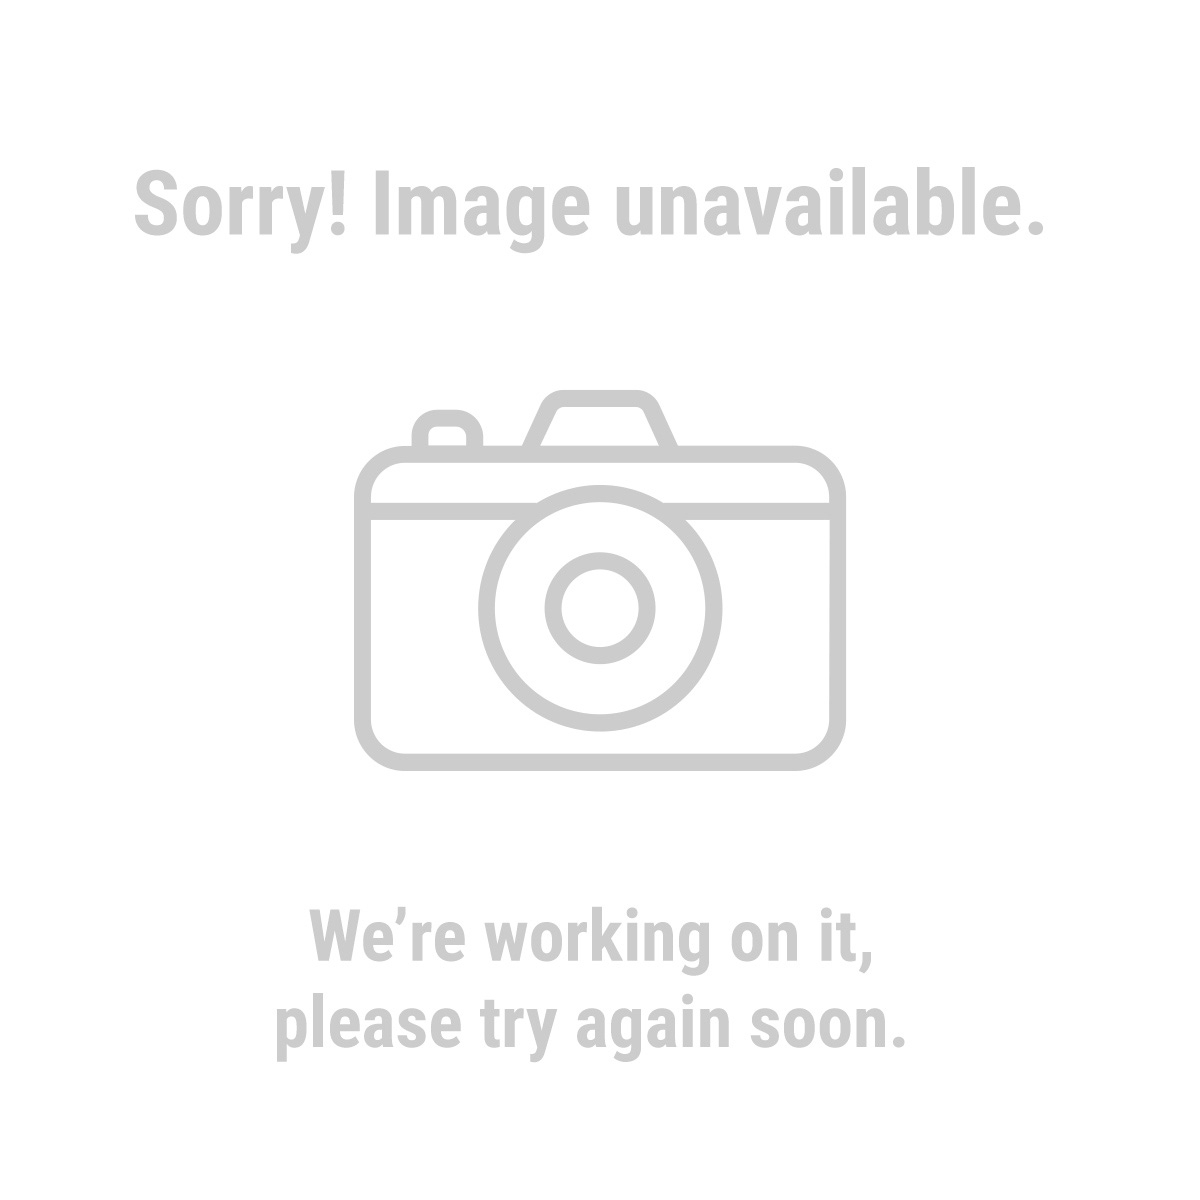 Pittsburgh Professional 67998 High Visibility 1/4 in. Drive Metric Socket Set 21 Pc